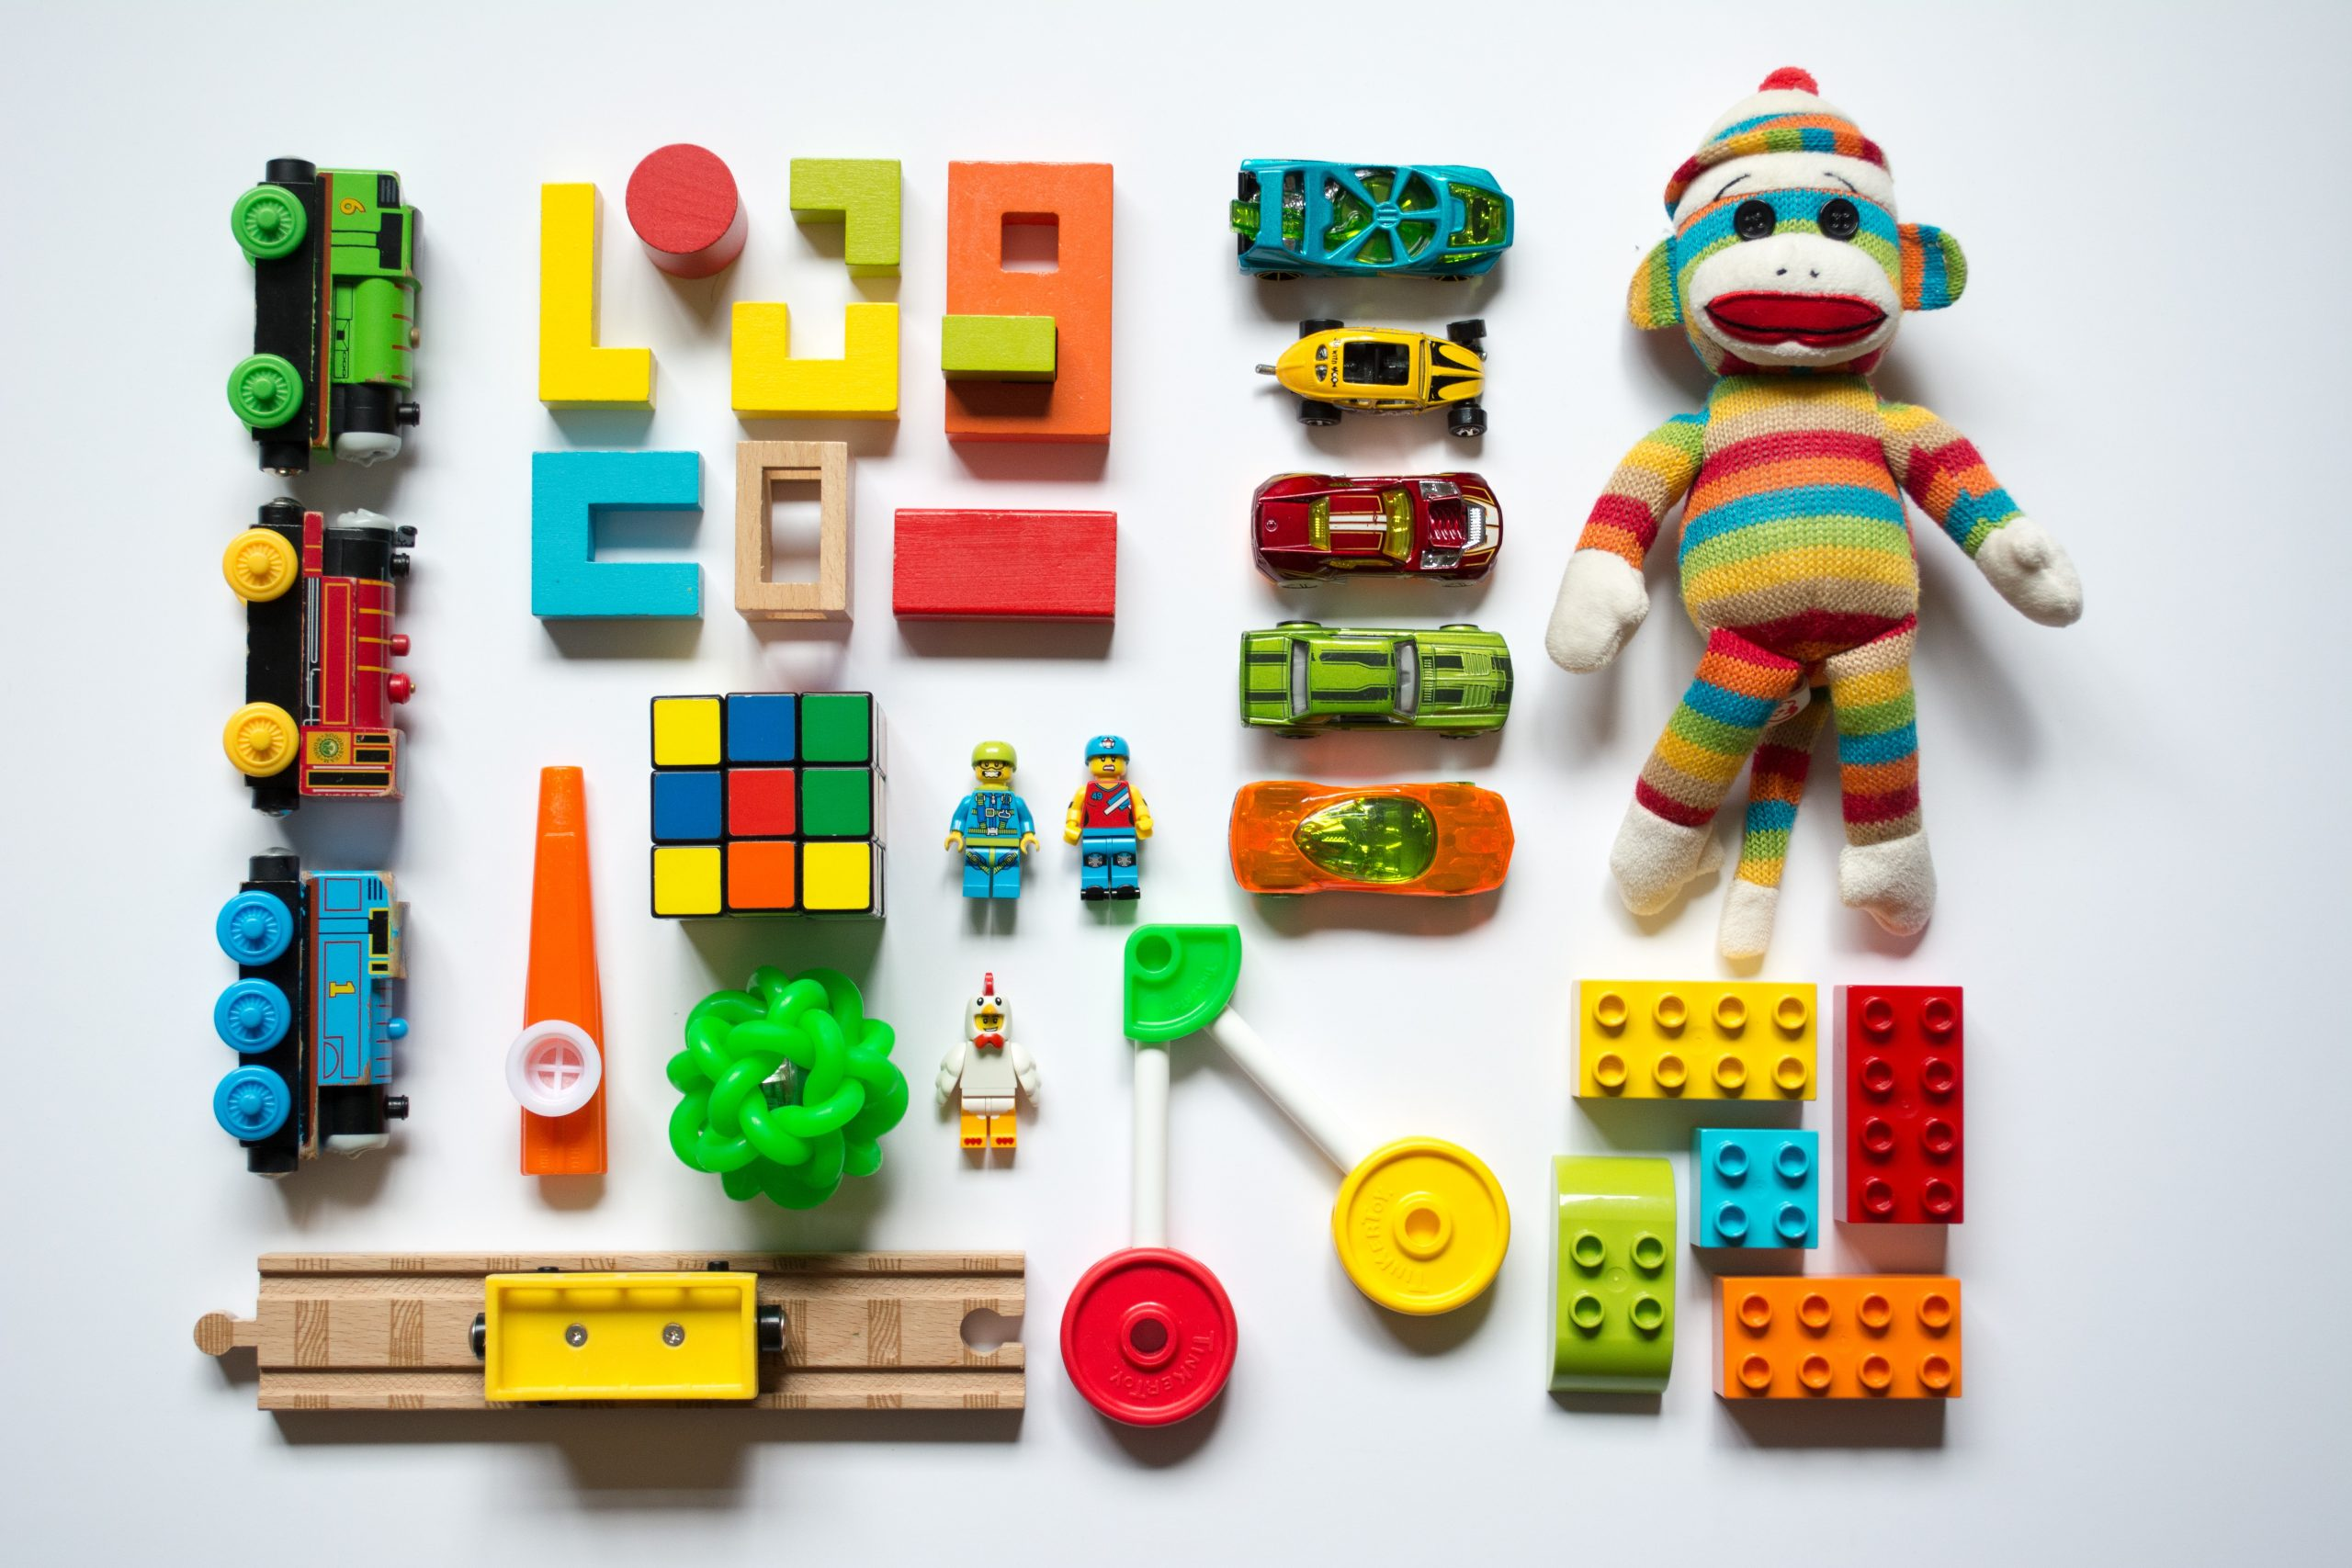 Get organized with these great toy storage ideas. #toystorage #clutter #organization #momlife #ideas